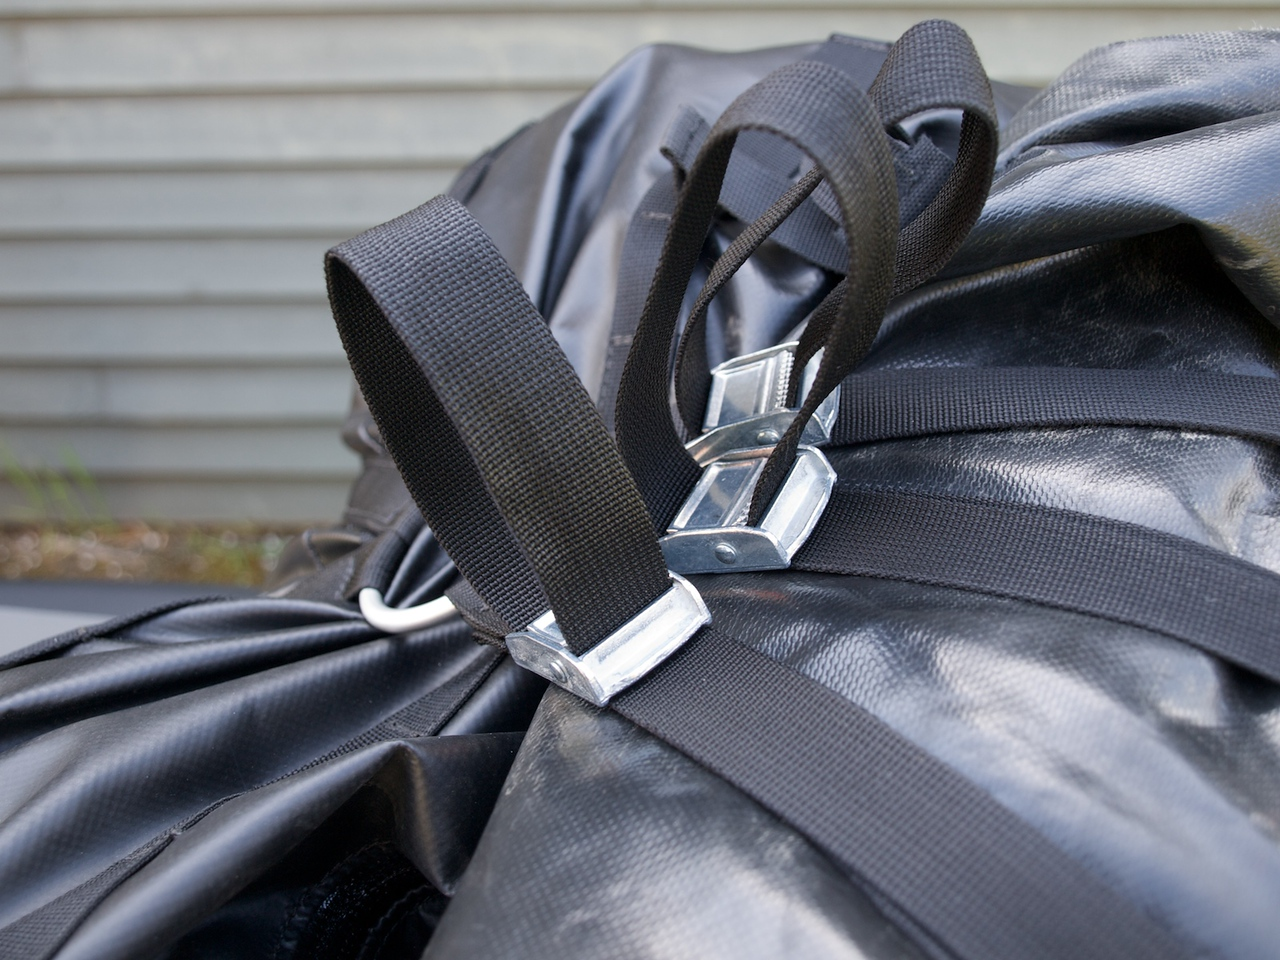 Sturdy aluminum and steel strap clasps. Here the rear strap holds the Ortlieb dry bag.